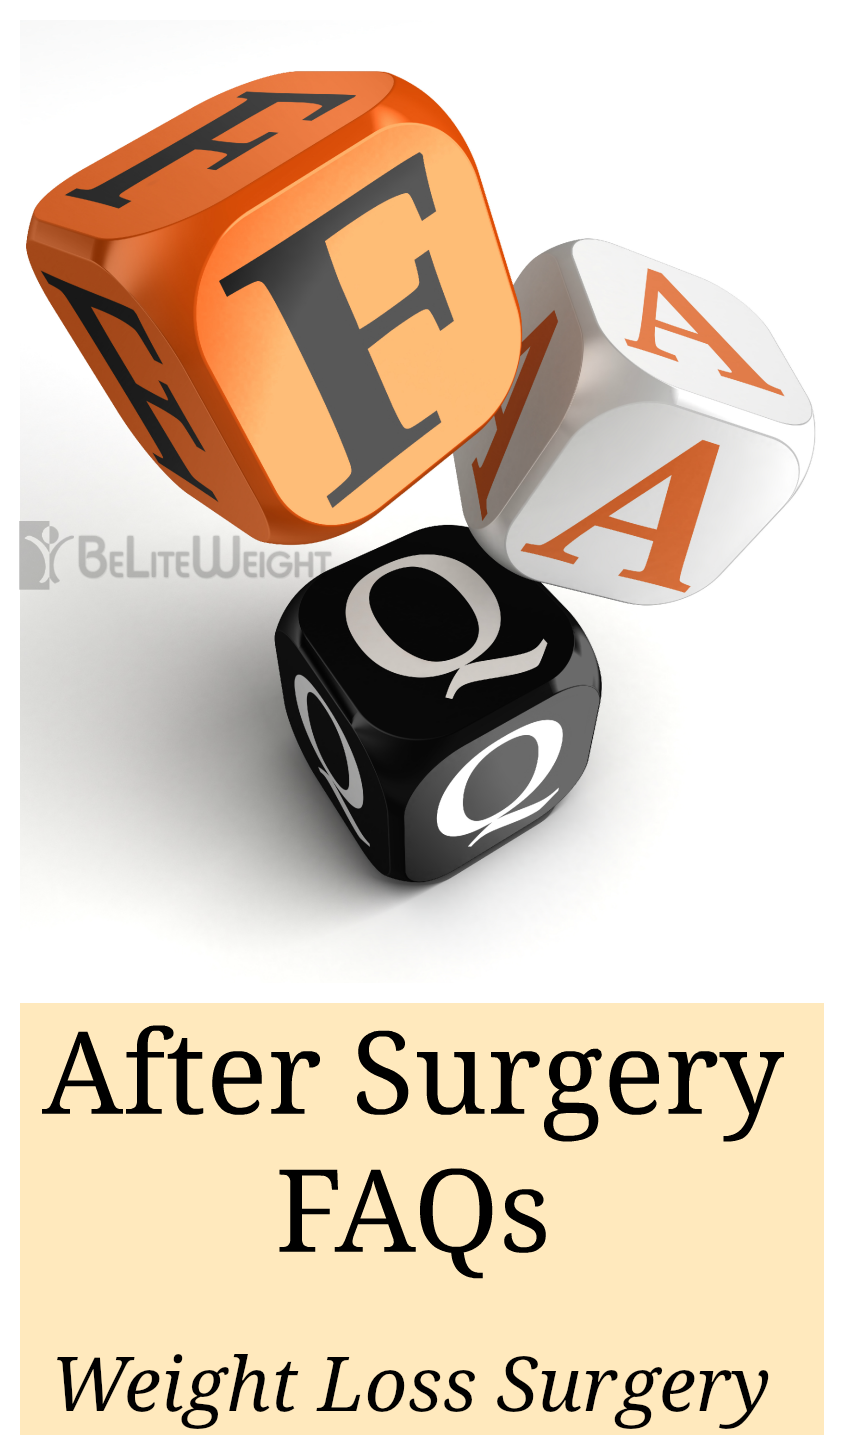 After Weight Loss Surgery FAQs